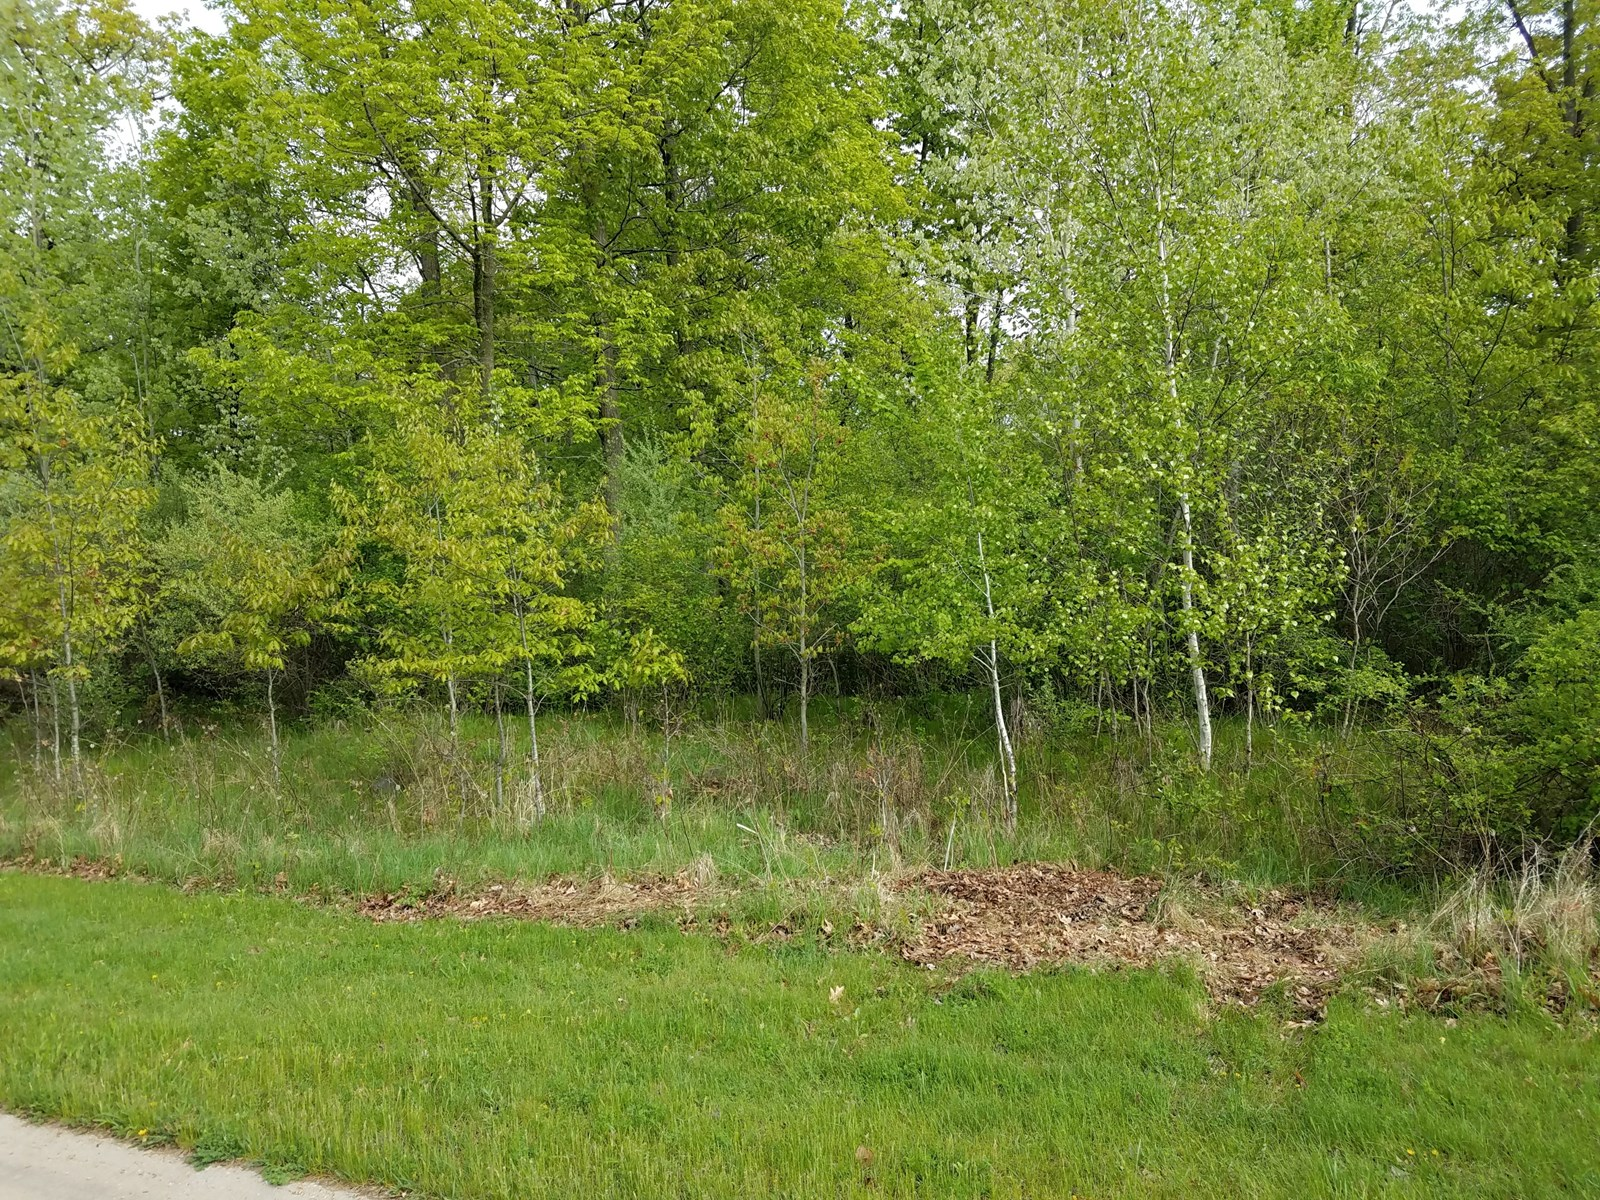 Vacant Land for Sale in Waupaca County WI Near Swan Park